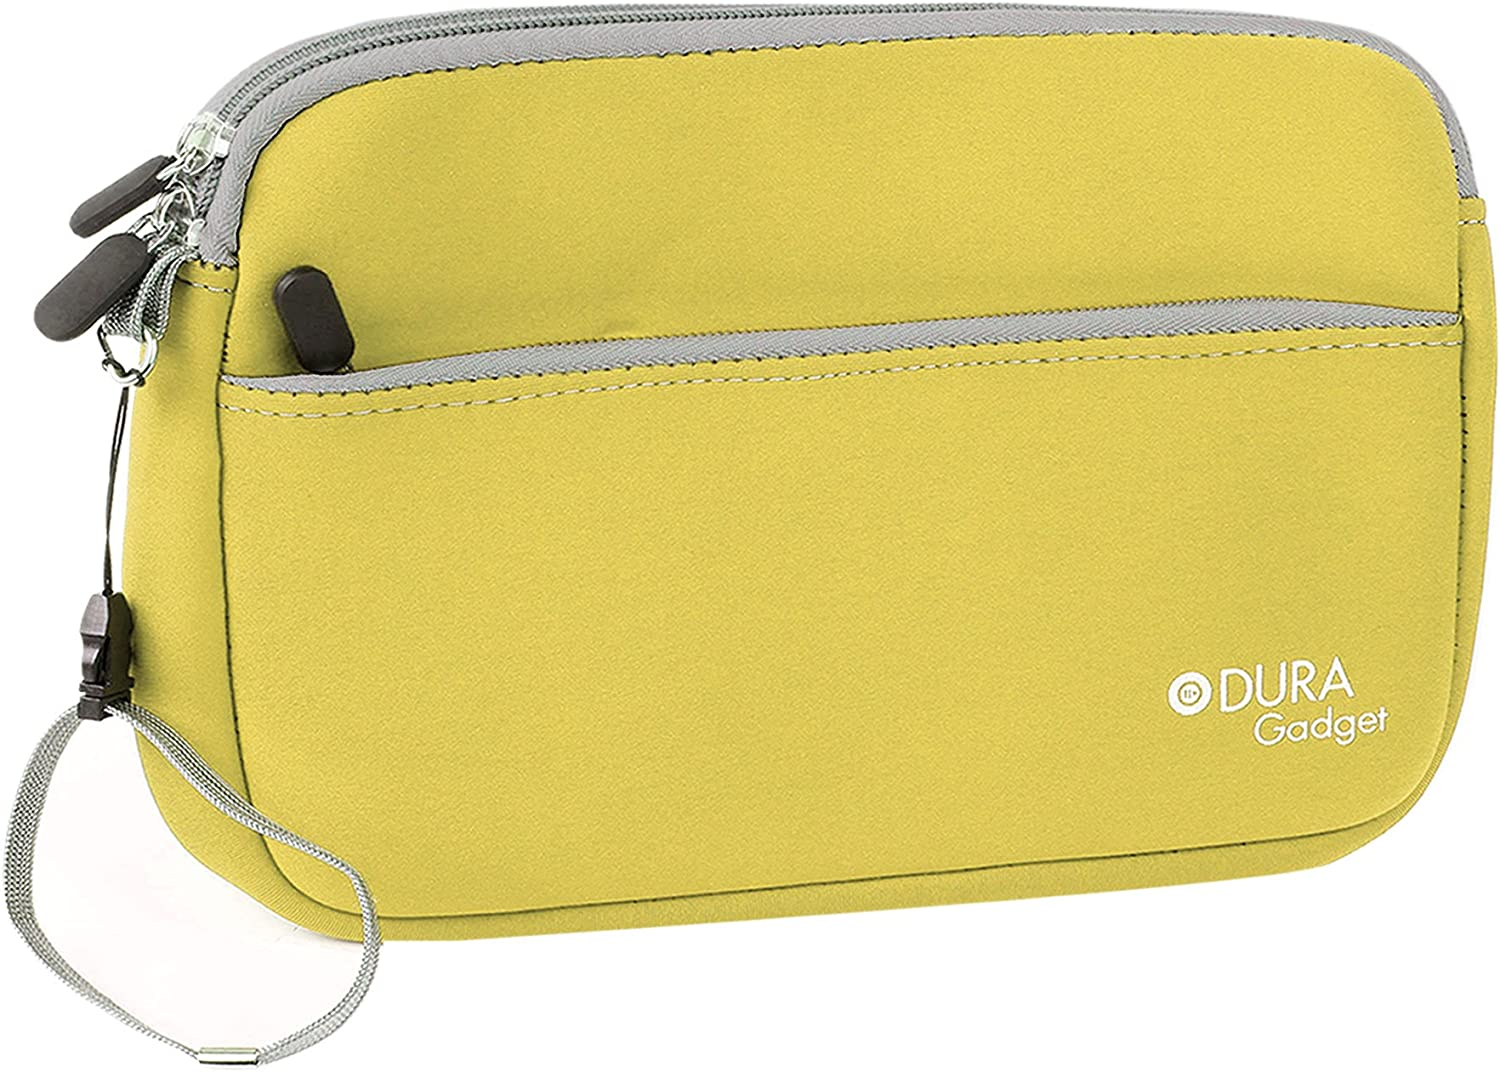 DURAGADGET Yellow Pouch - Compatible with SmartPad EP800 Ultra | EP801 /Acer Iconia B1 | A1 | W3 /Polaroid MIDCD08 /I-Onik TP8-1200QC | TP785-12000C | TP8-1500DC /Haier Mini 8-Inch & Mini 8-Inch